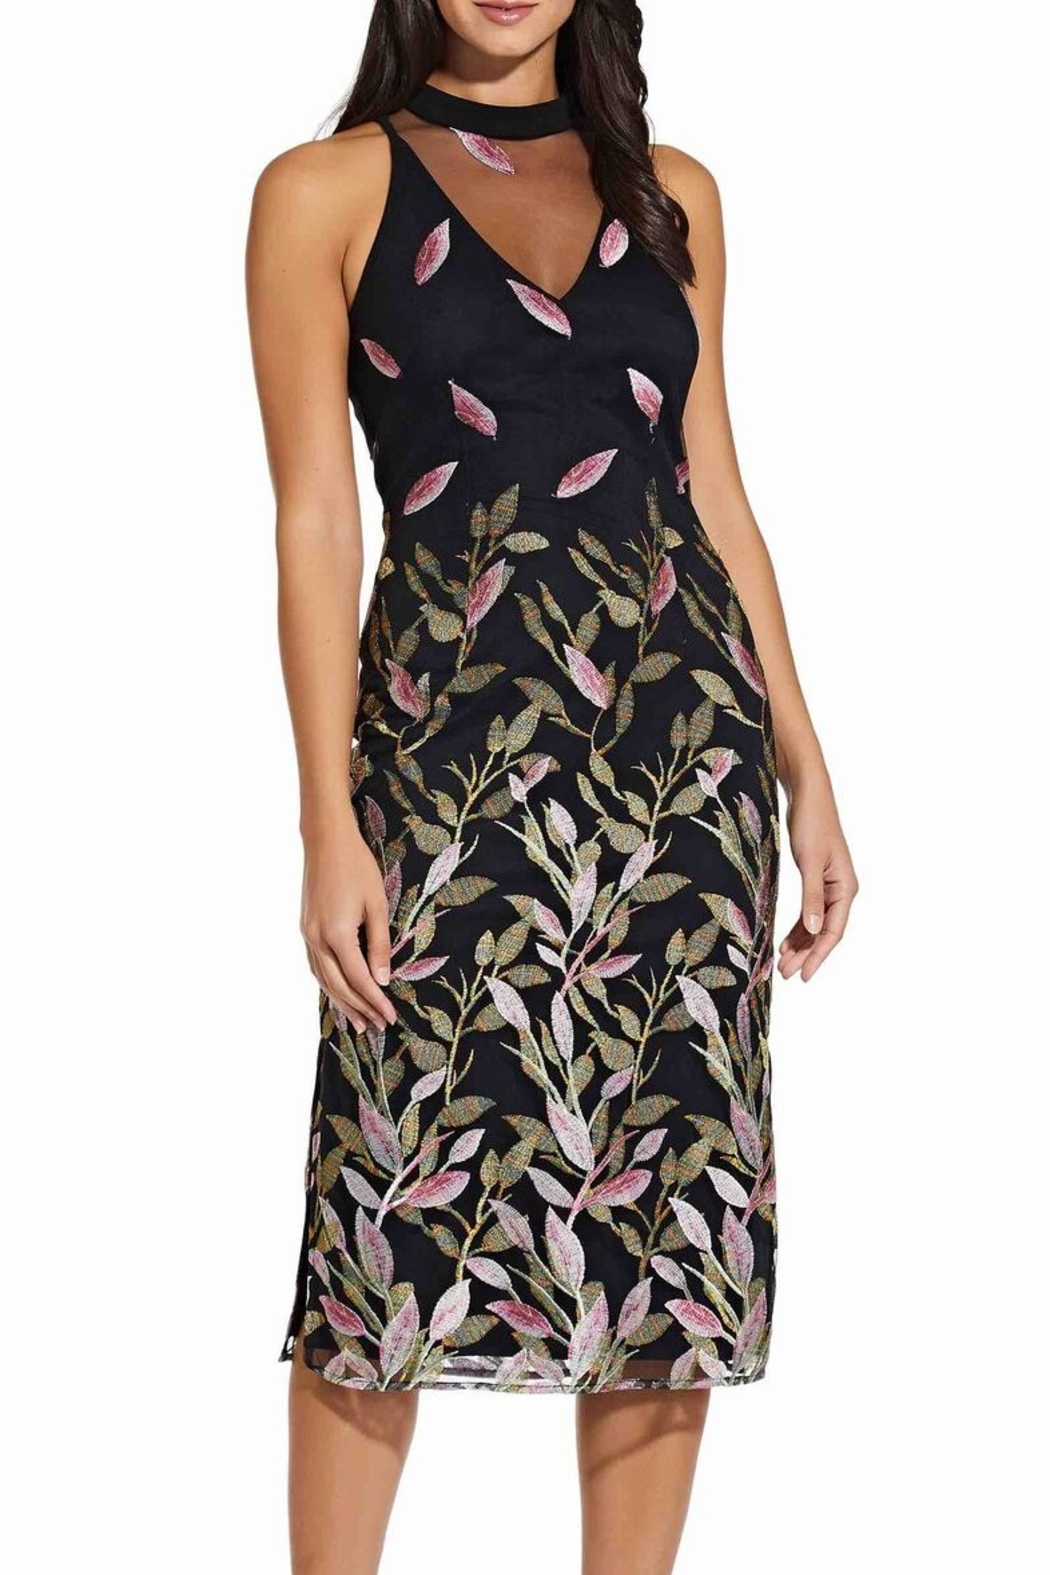 Adrianna Papell Fluttering Leaves Sheath Dress - Main Image